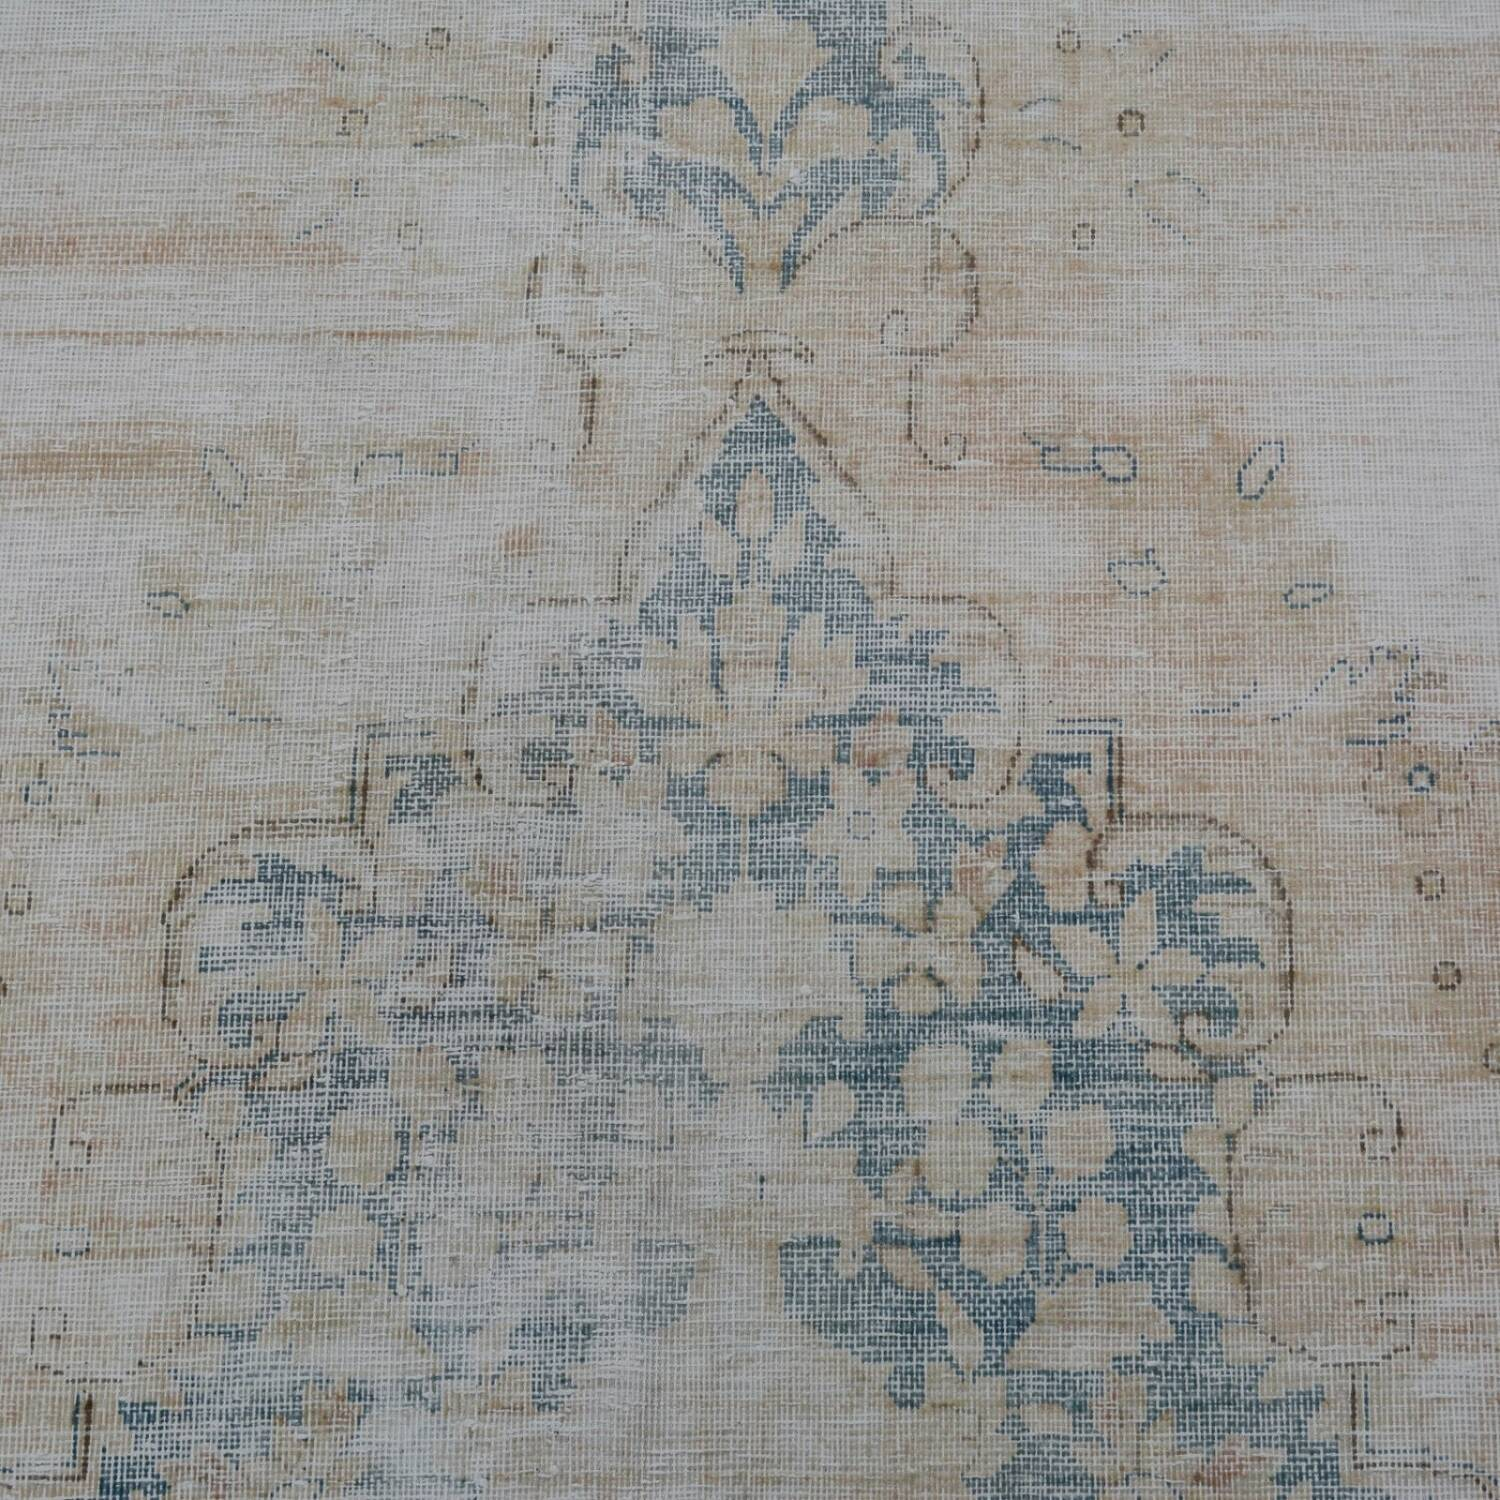 Distressed Antique Kerman Persian Muted Area Rug 10x13 image 4